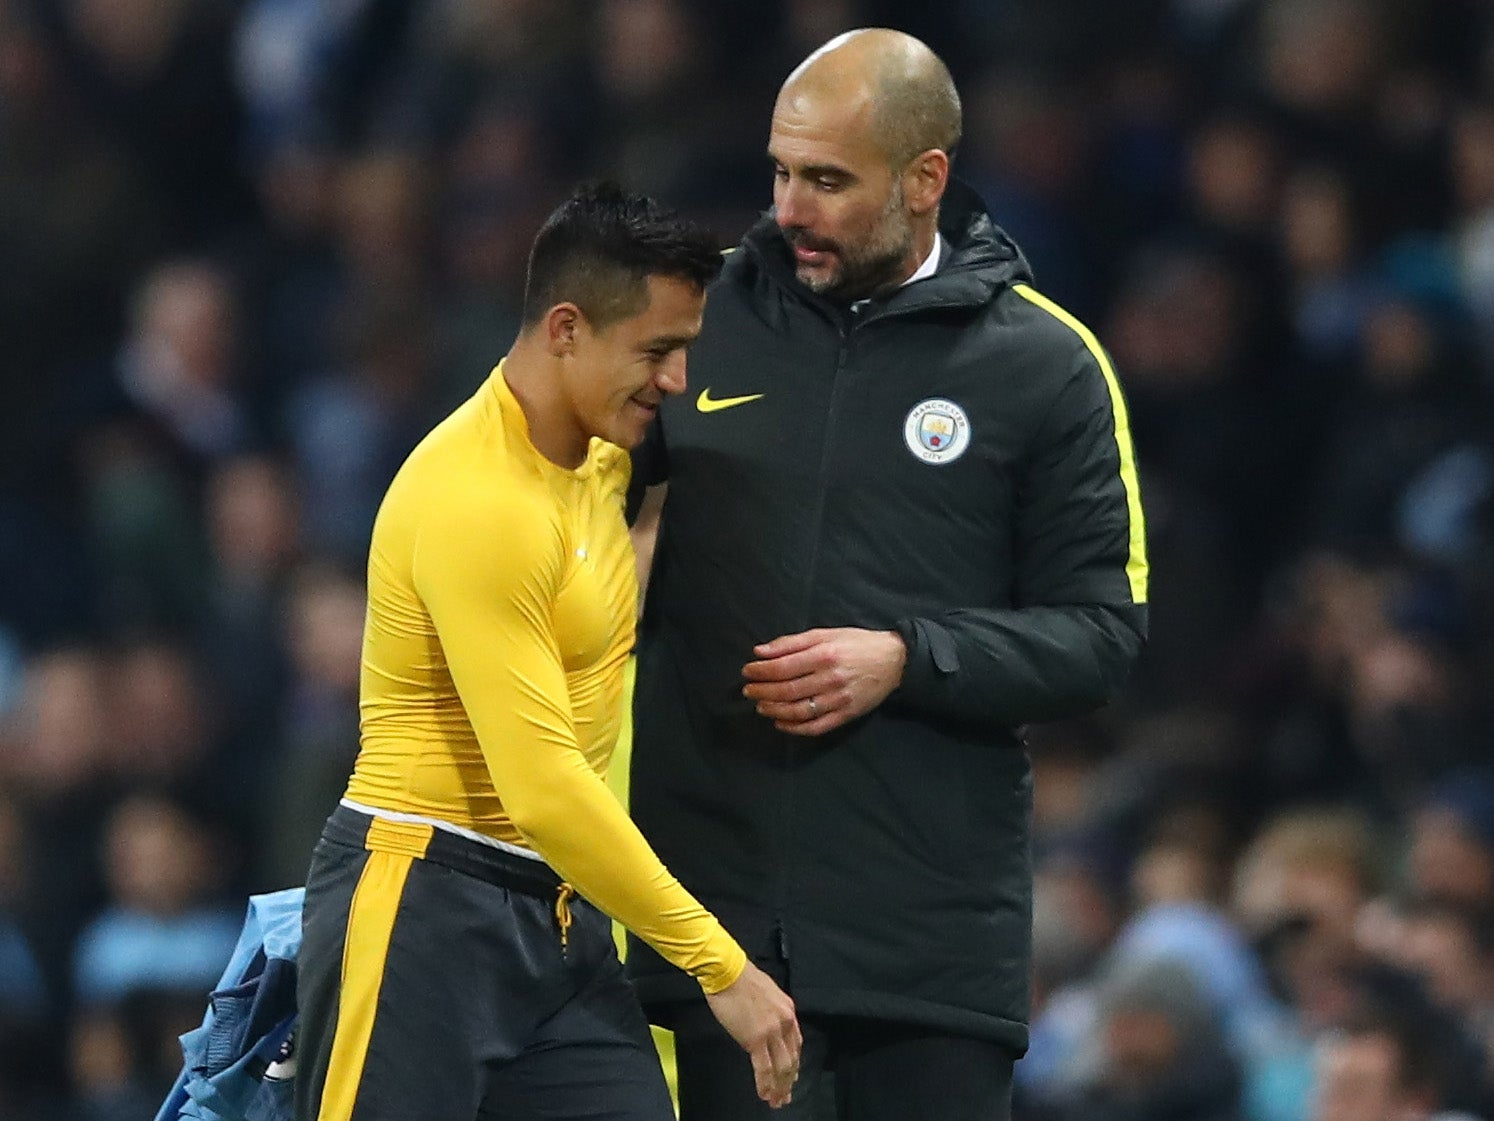 Pep Guardiola expects a number of top clubs to try and sign Alexis Sanchez from Arsenal this summer